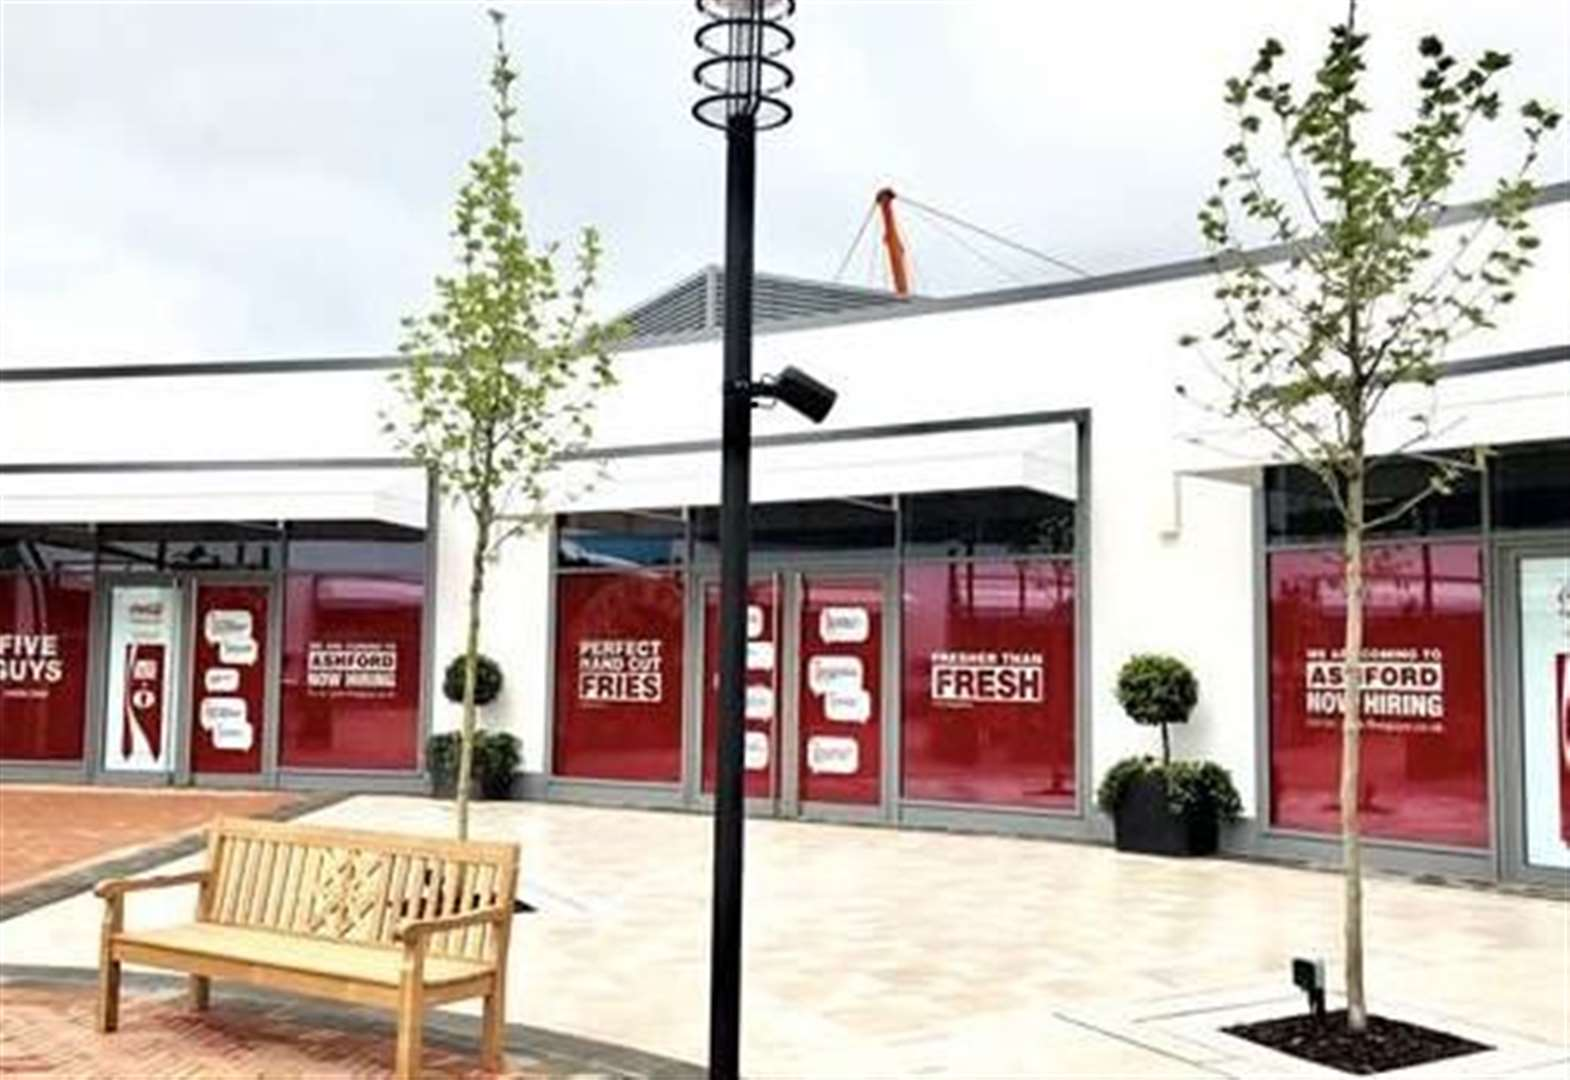 d3186aa37 Five Guys allowed to open at Ashford Designer Outlet despite ...